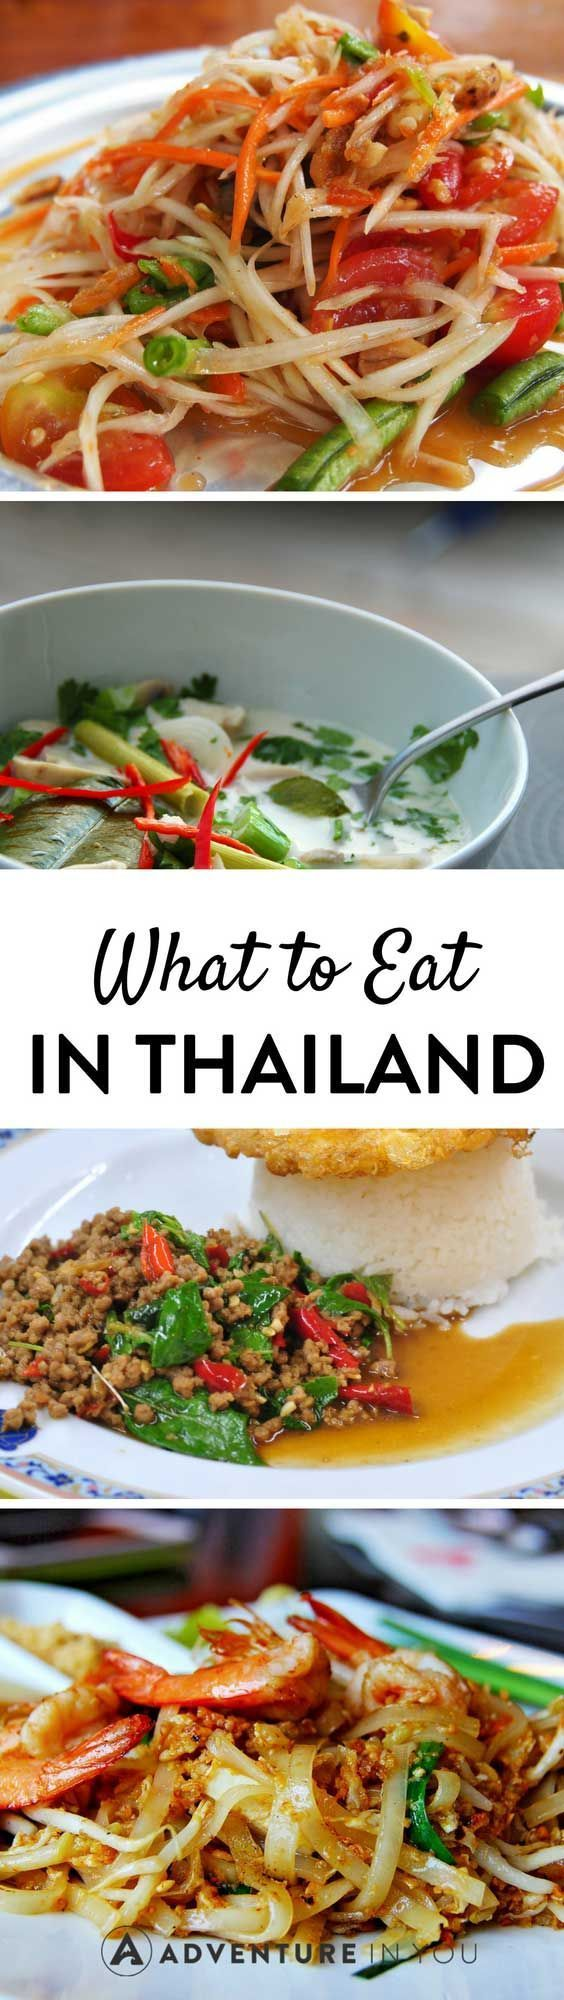 Check out our food guide for what to eat in Thailand. From Pad Thai's, Som Tum's to the most exotic mouth watering dishes in Thailand.